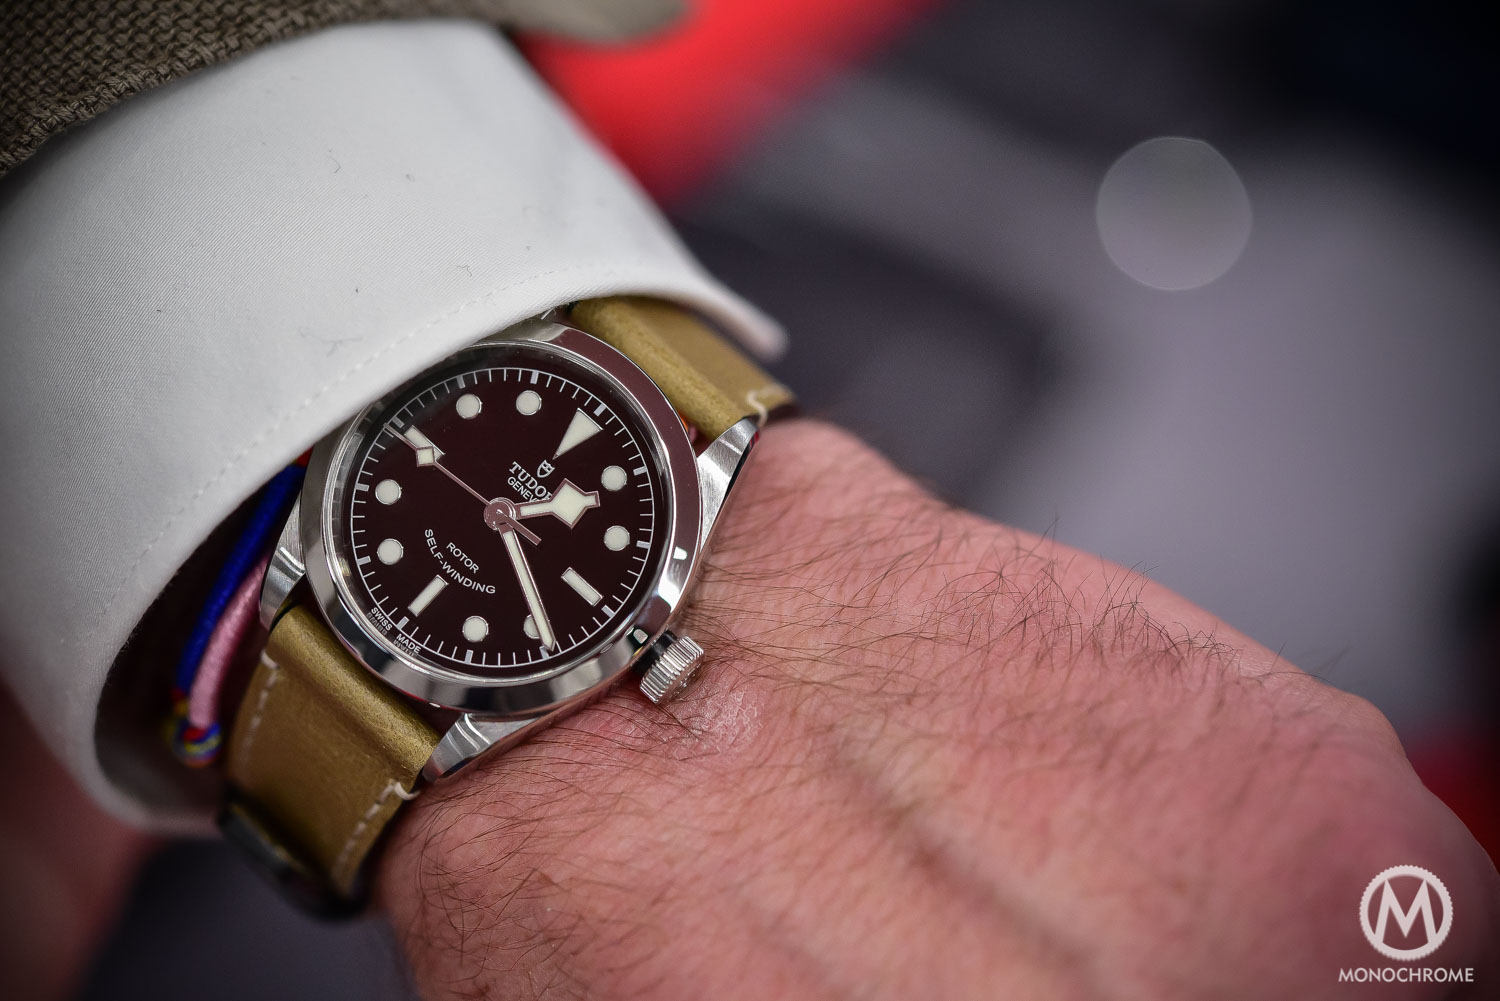 Top 5 Watches from Baselworld 2016 - Tudor-Heritage-Black-Bay-36-ref-79500-Baselworld-2016 - Top 5 From Baselworld 2016 Frank - 2